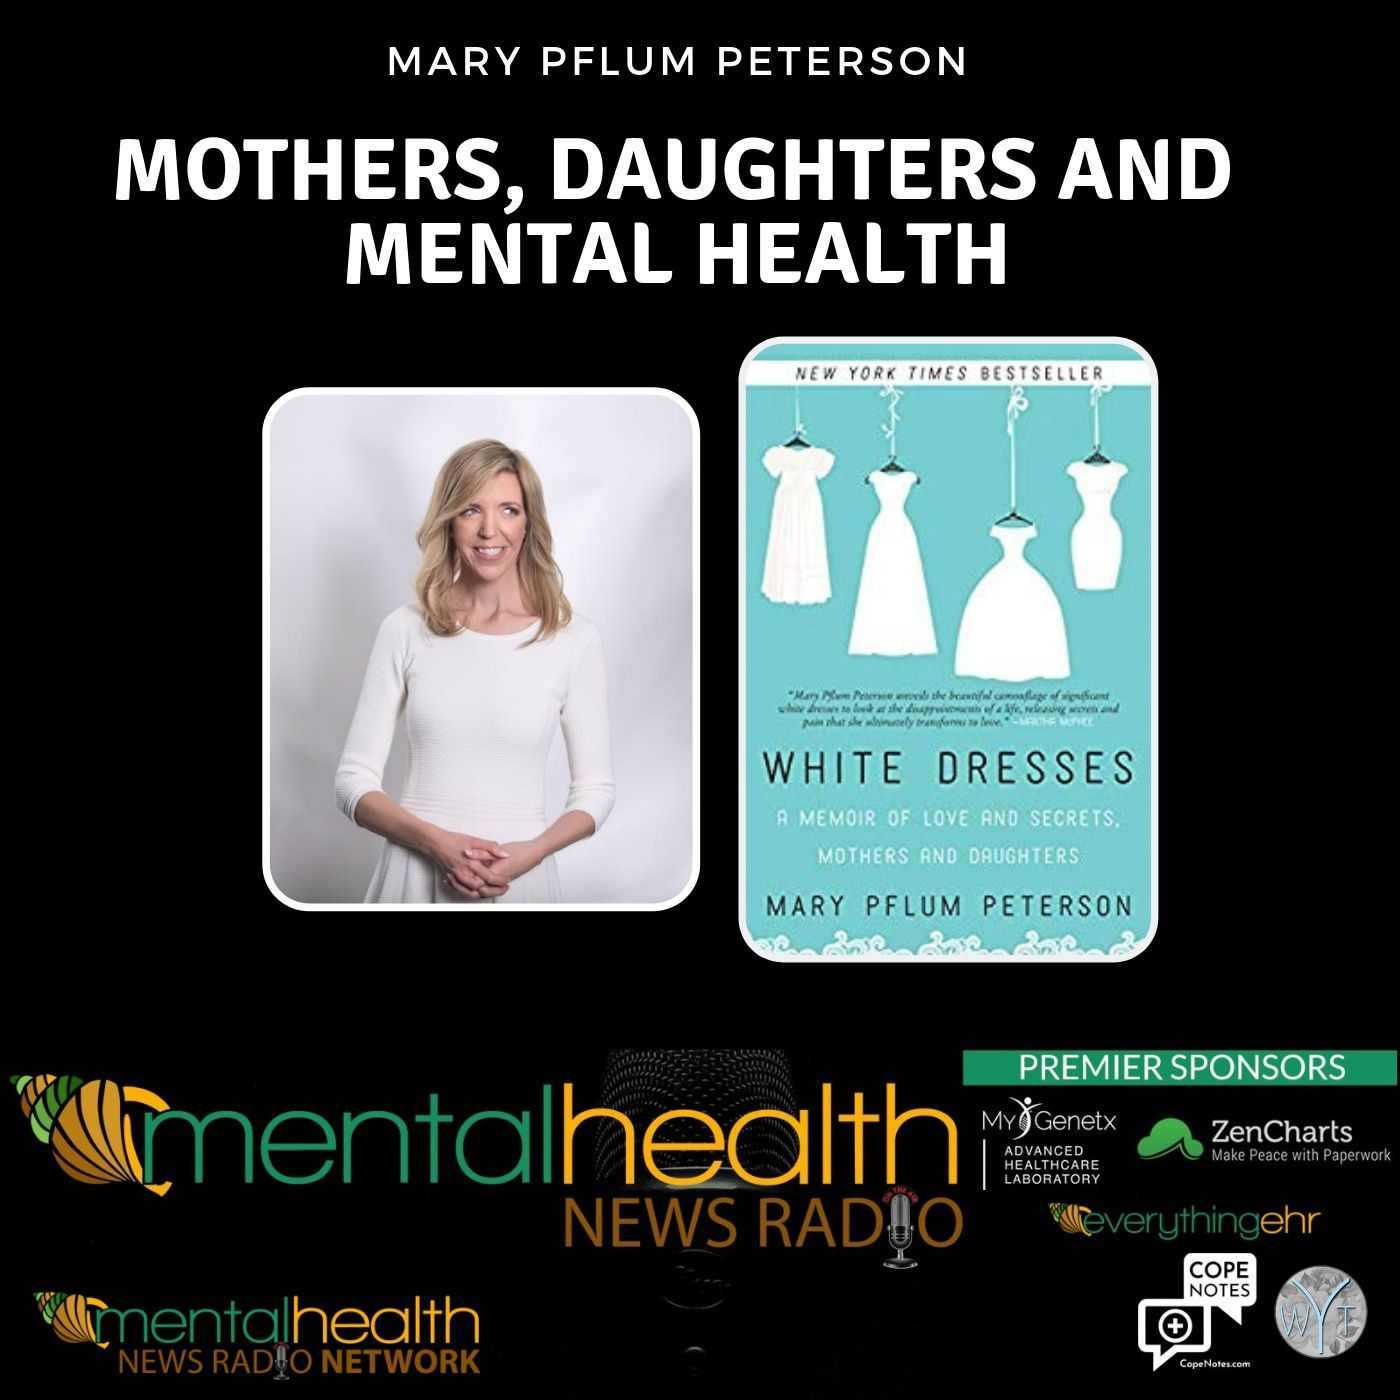 Mental Health News Radio - Mothers, Daughters and Mental Health with Mary Pflum Peterson